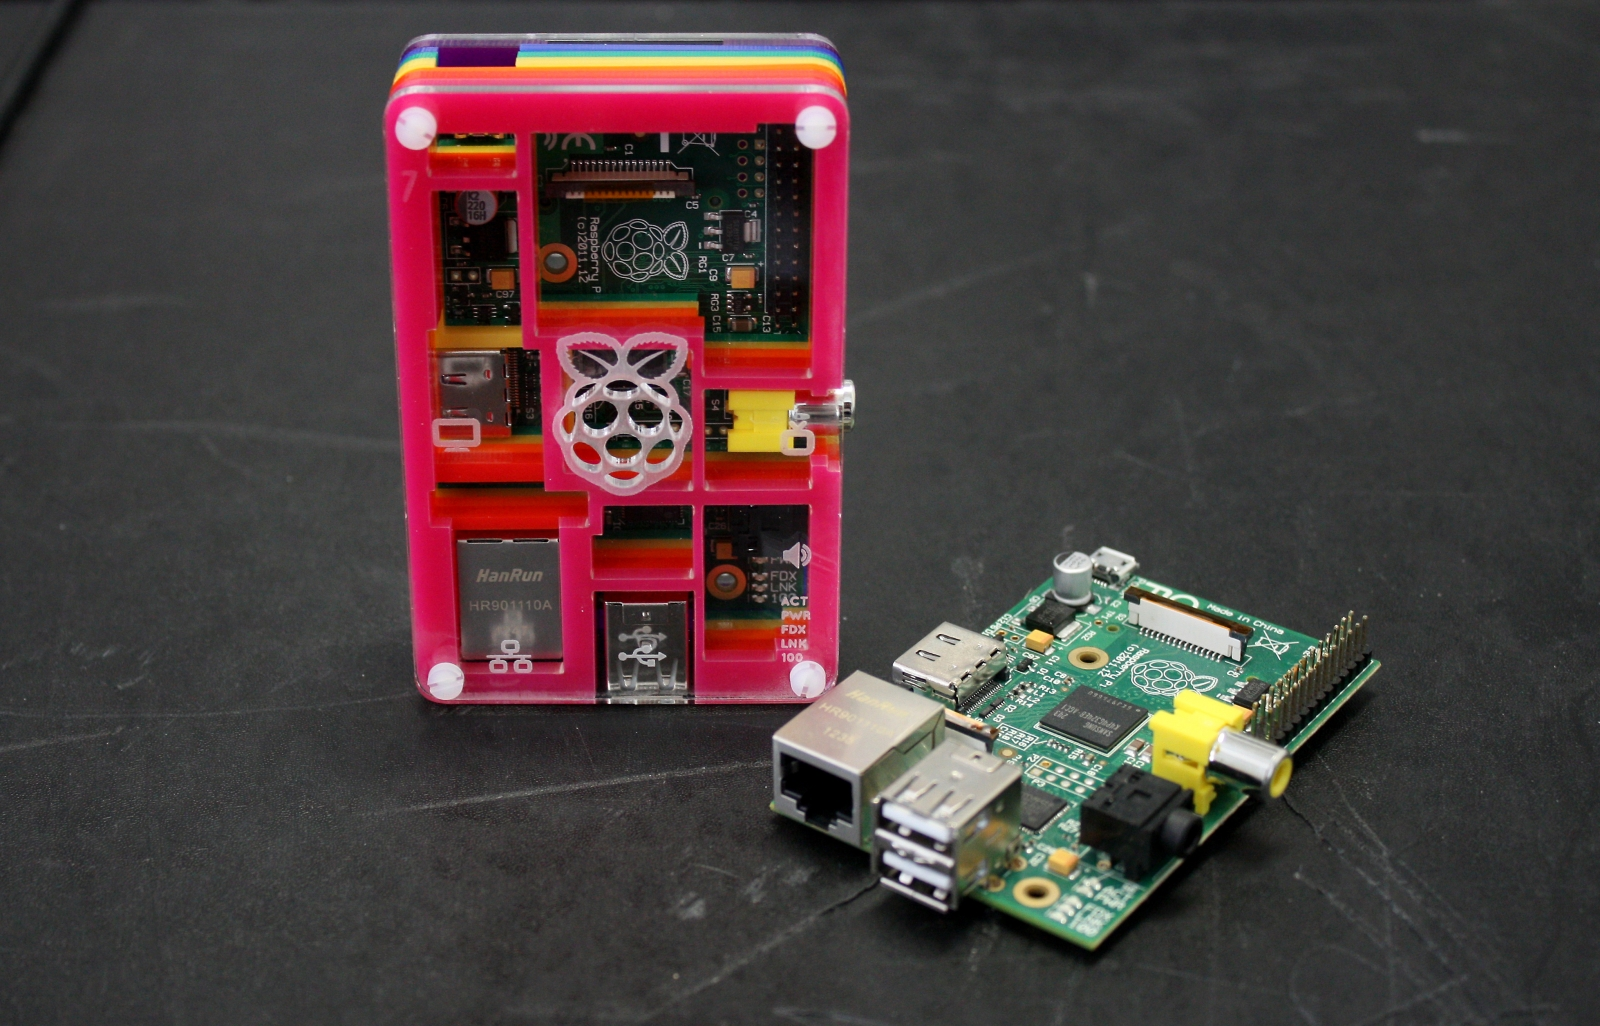 Raspberry Pi vendor, Electrocomponents says profits could rise if post-Brexit sterling weakness would continue